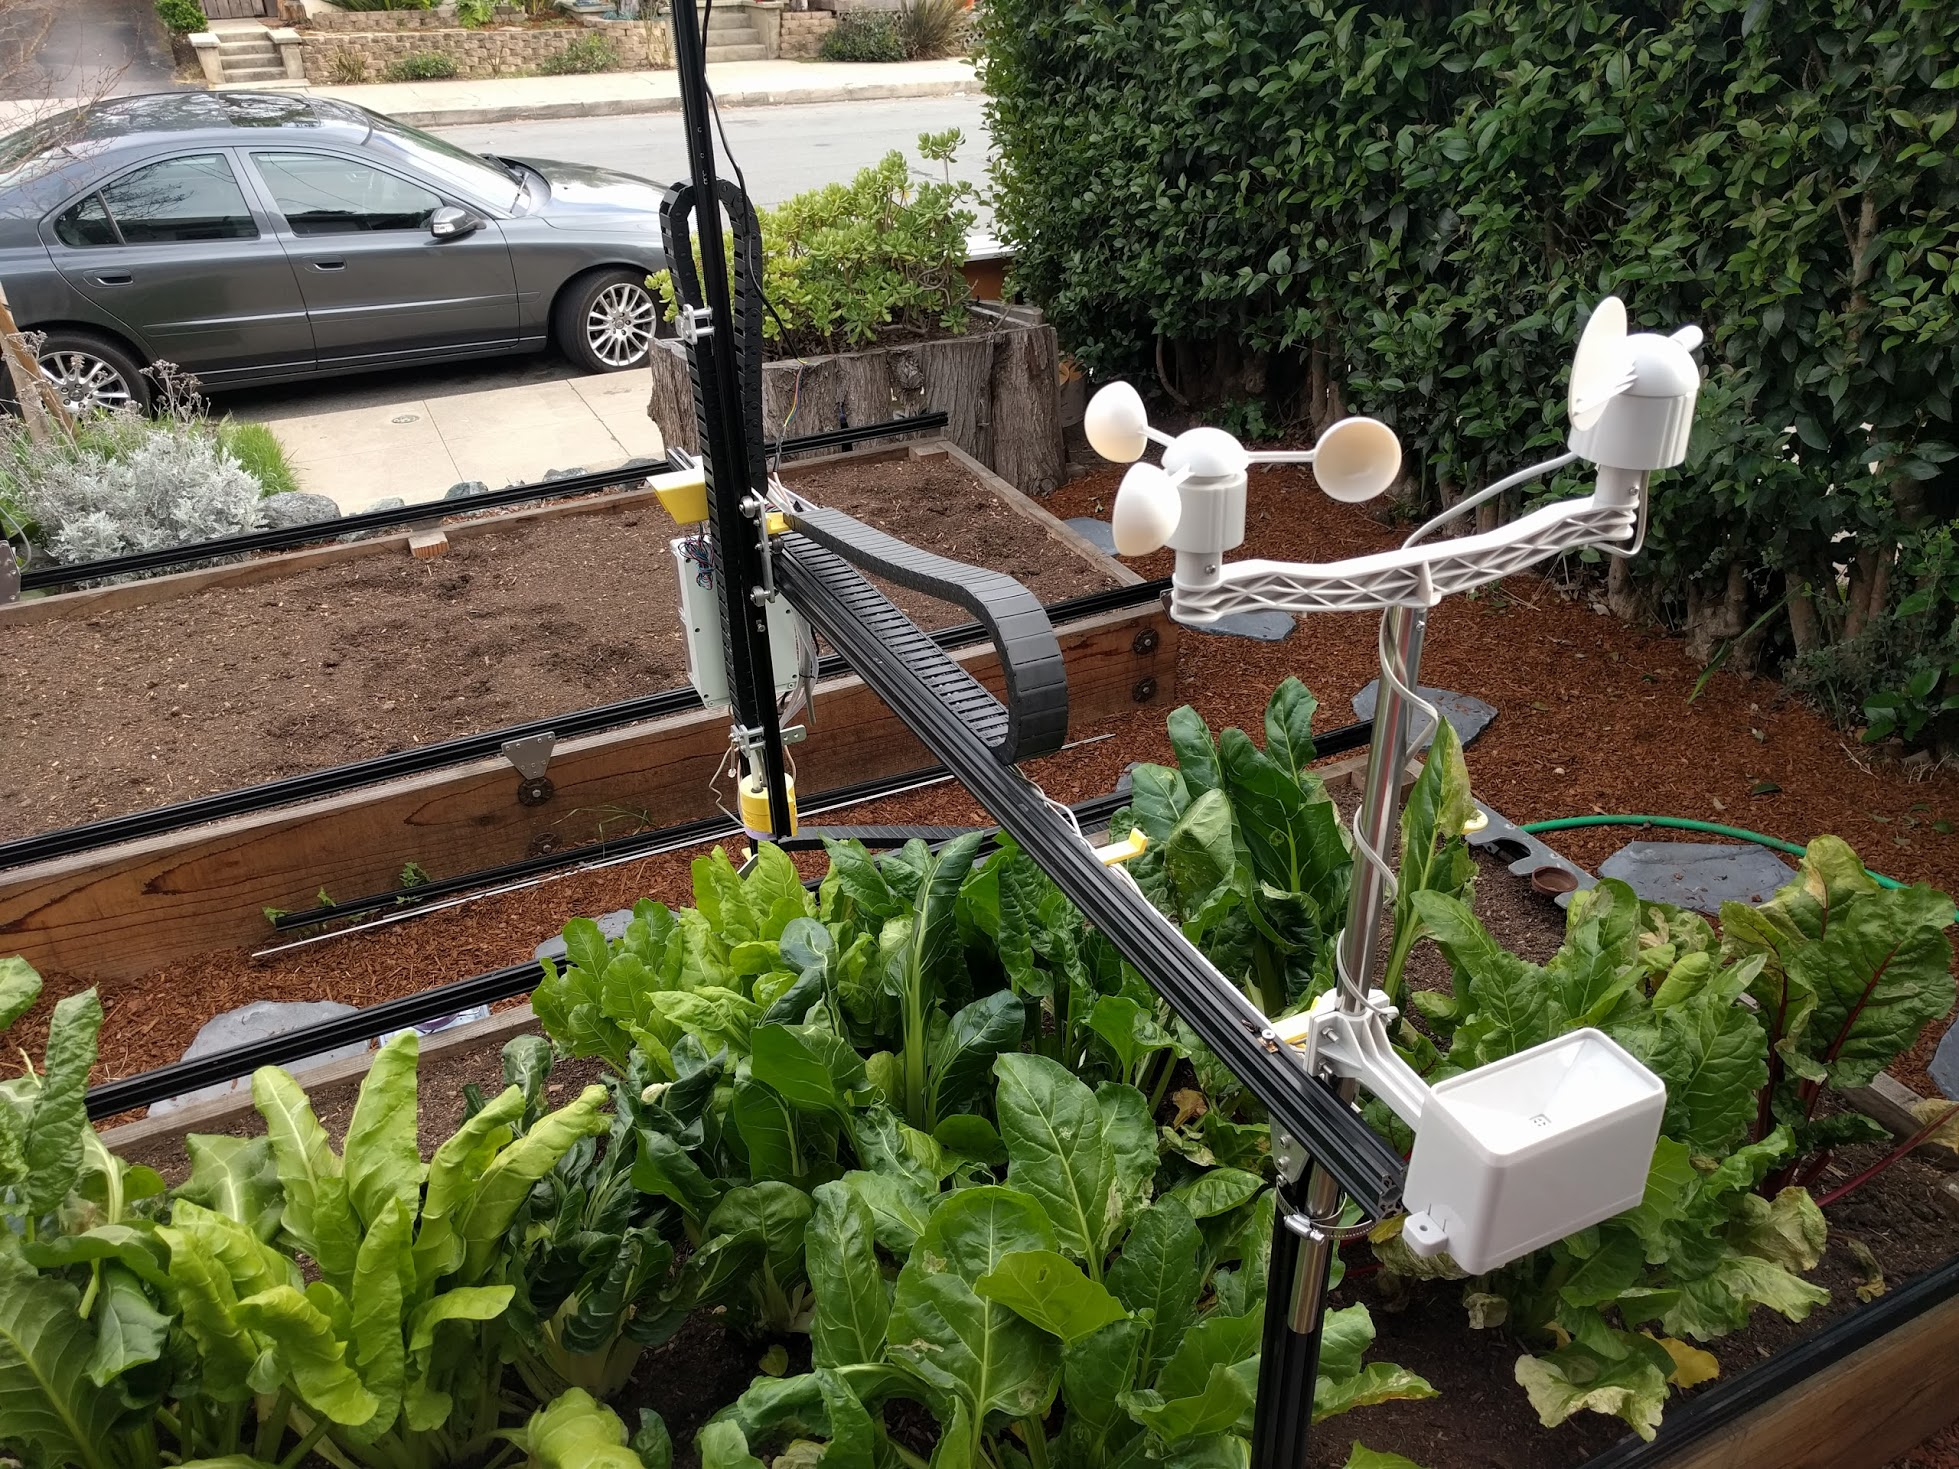 This FarmBot has been augmented with a weather station